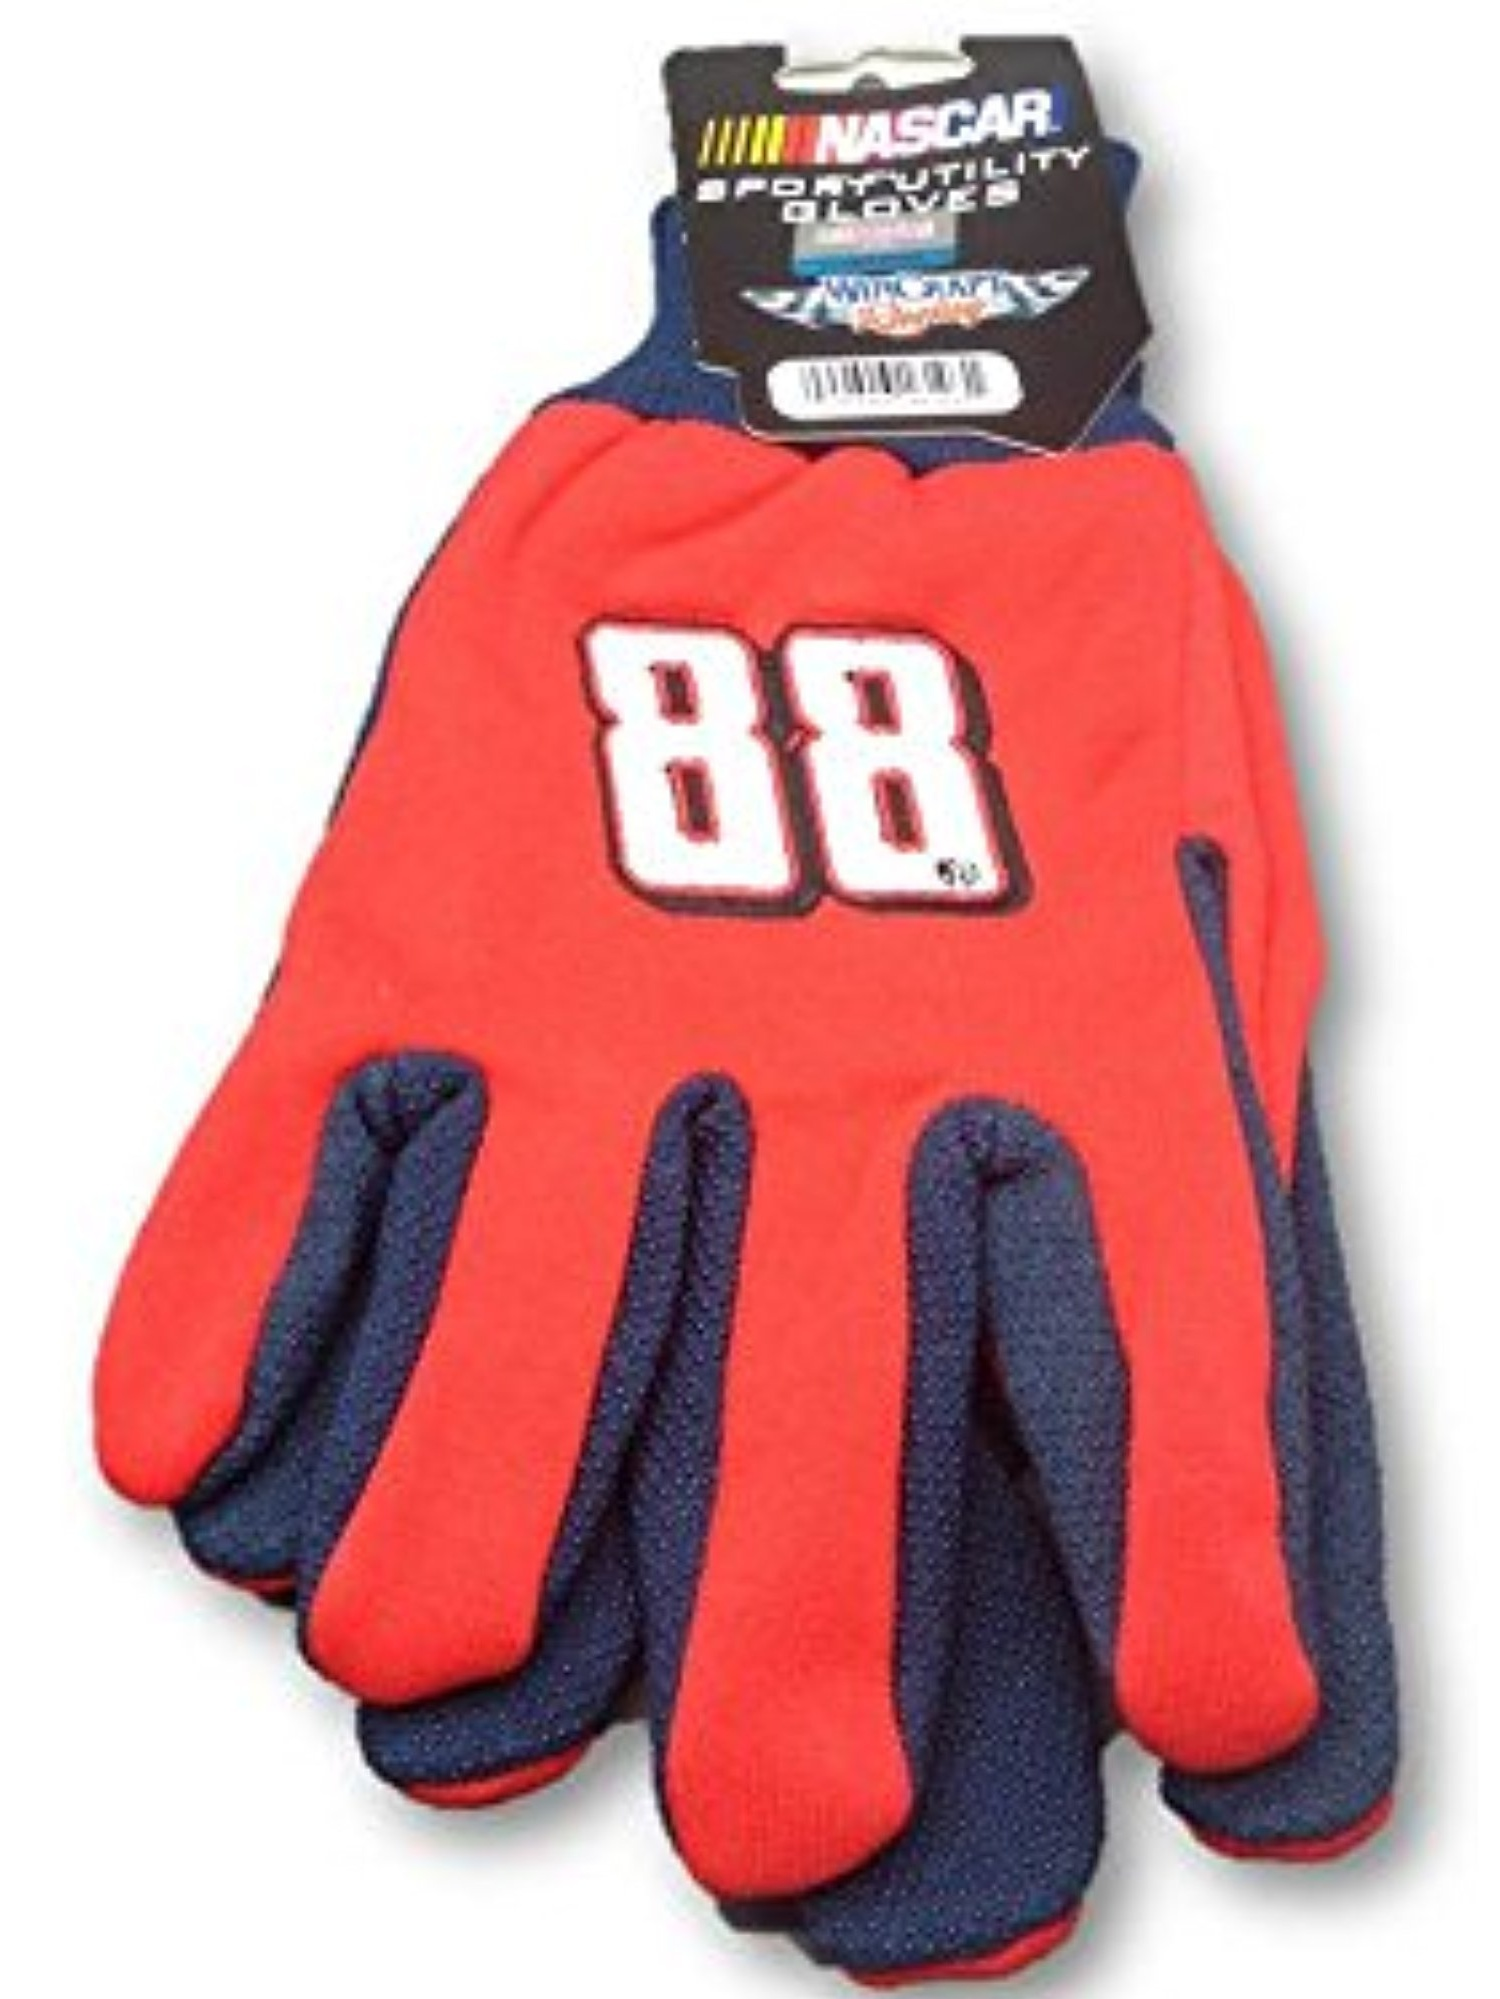 Dale Earnhardt Jr #88 Work Nascar Knit Jersey Utility Gripping Adult Gloves by McArthur